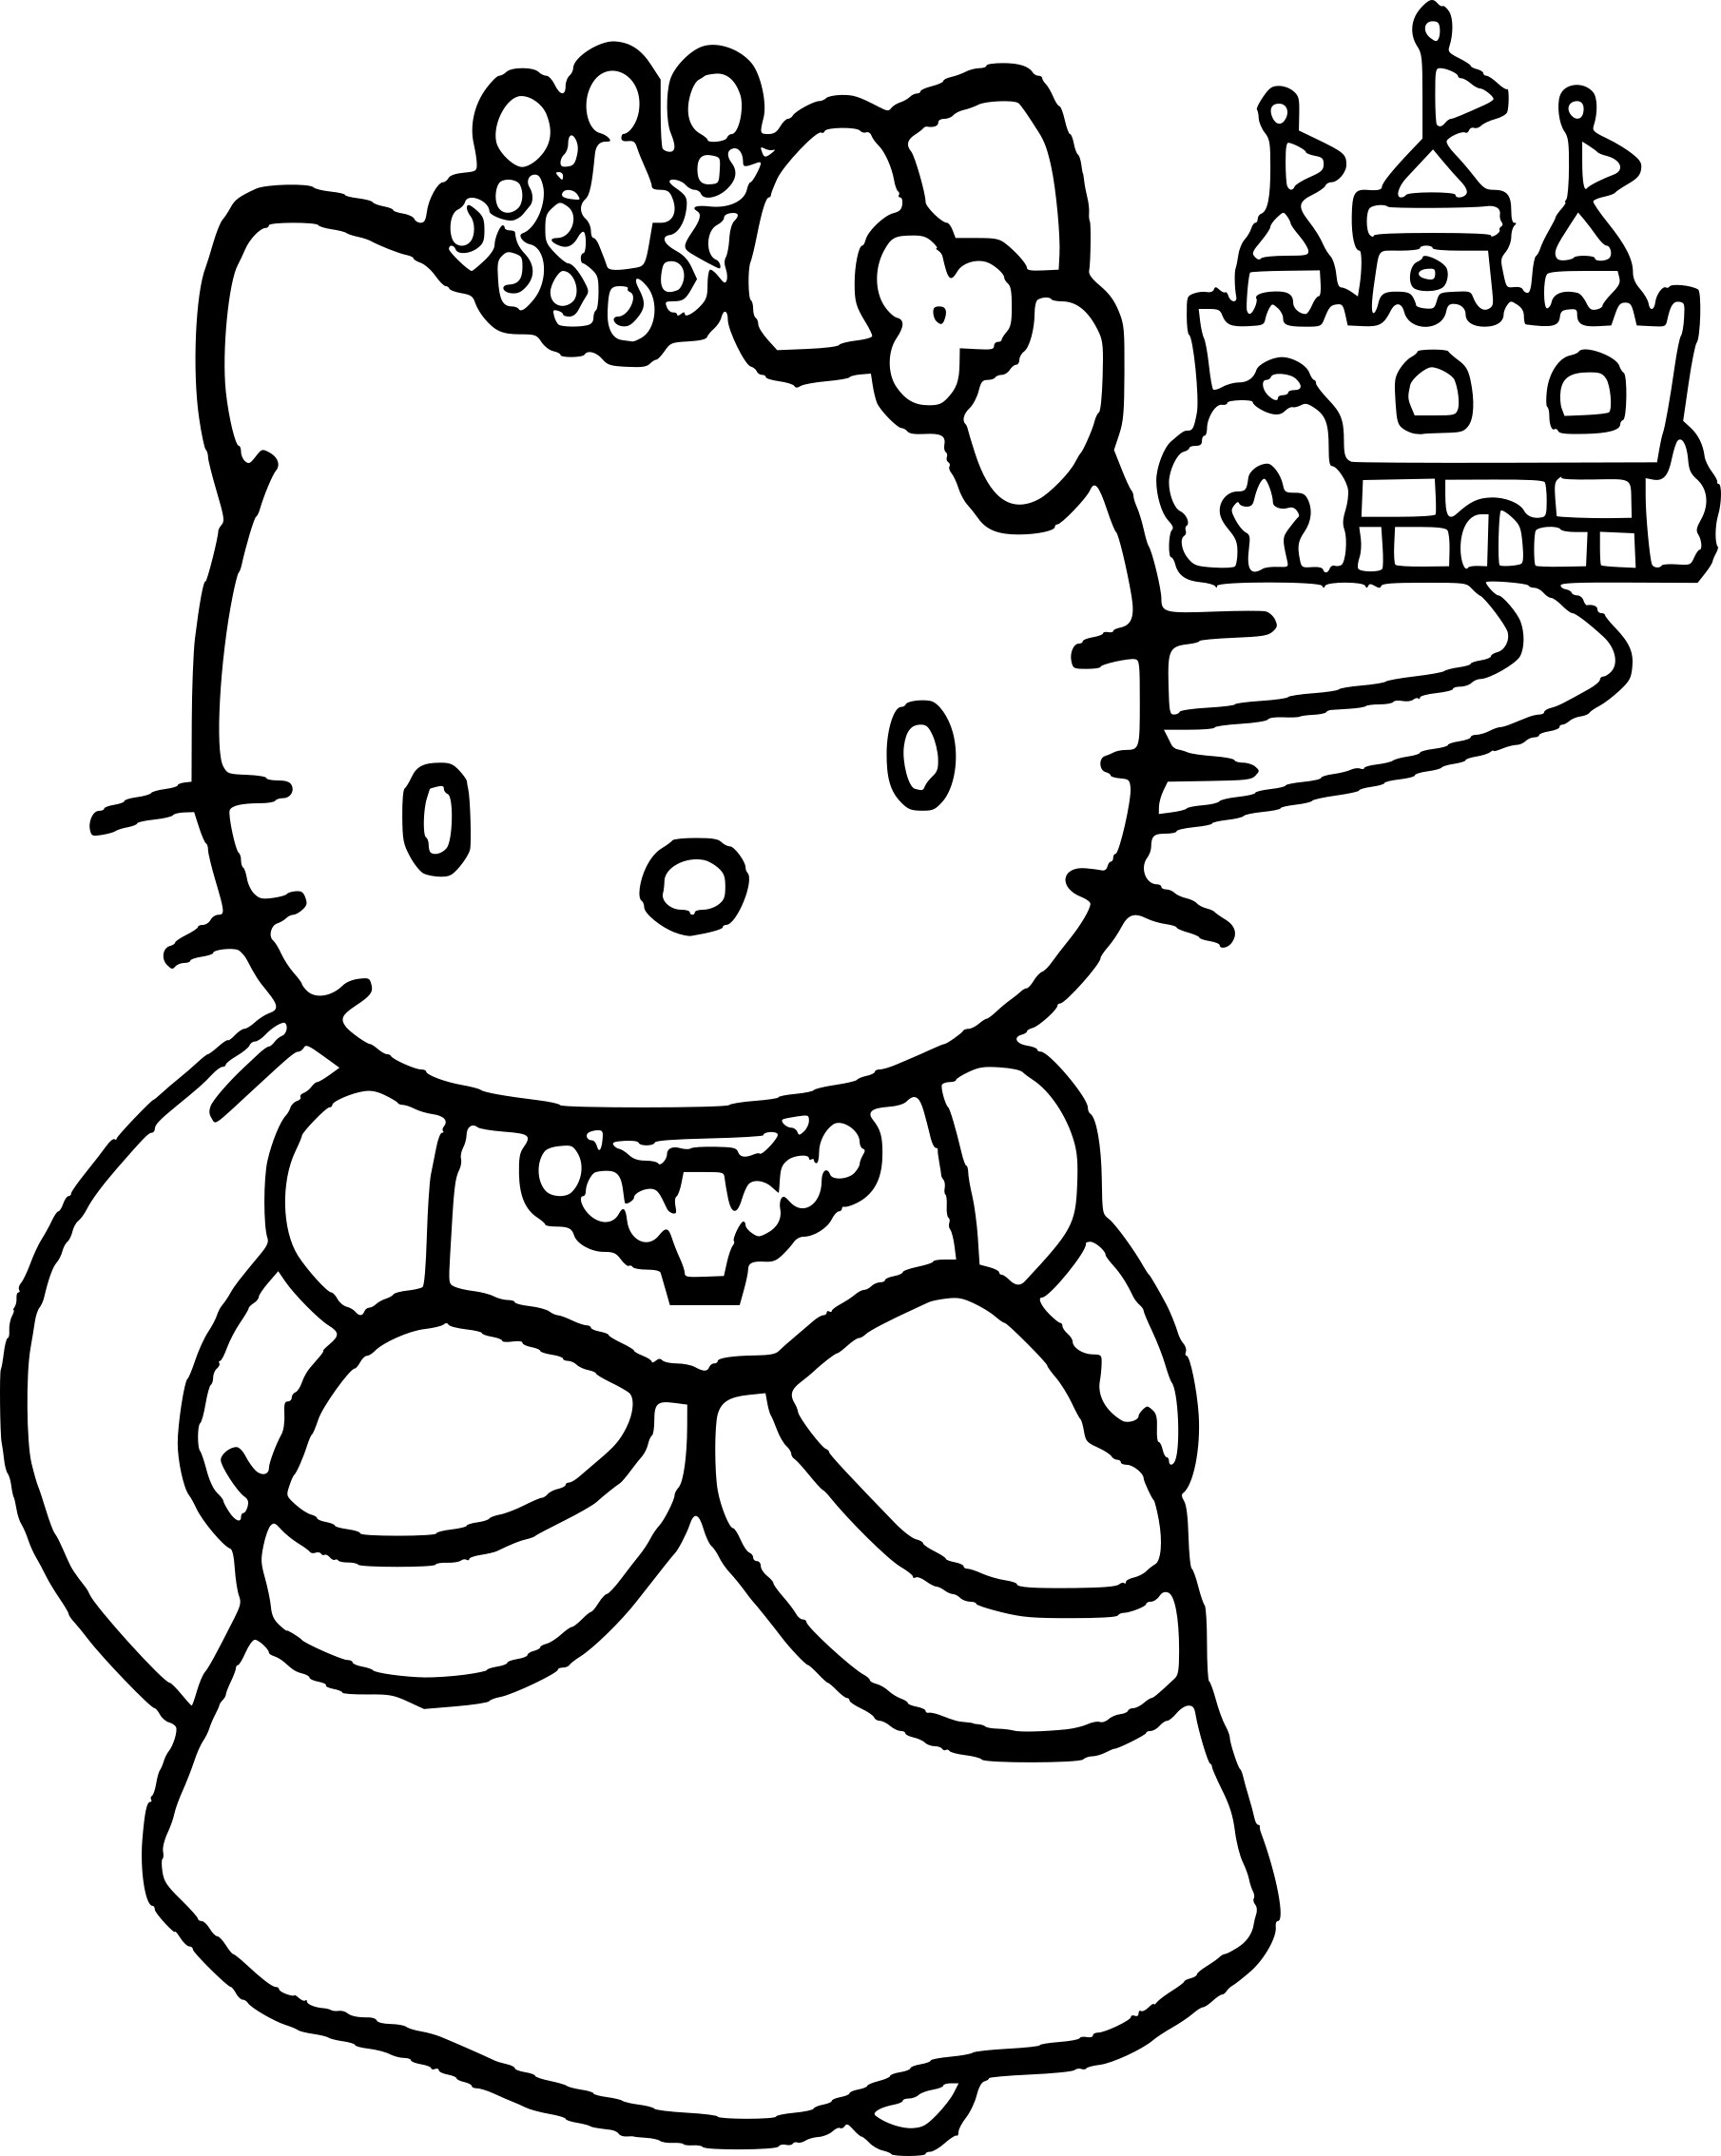 Coloriage Hello Kitty Princesse Dessin A Imprimer Sur Coloriages Info